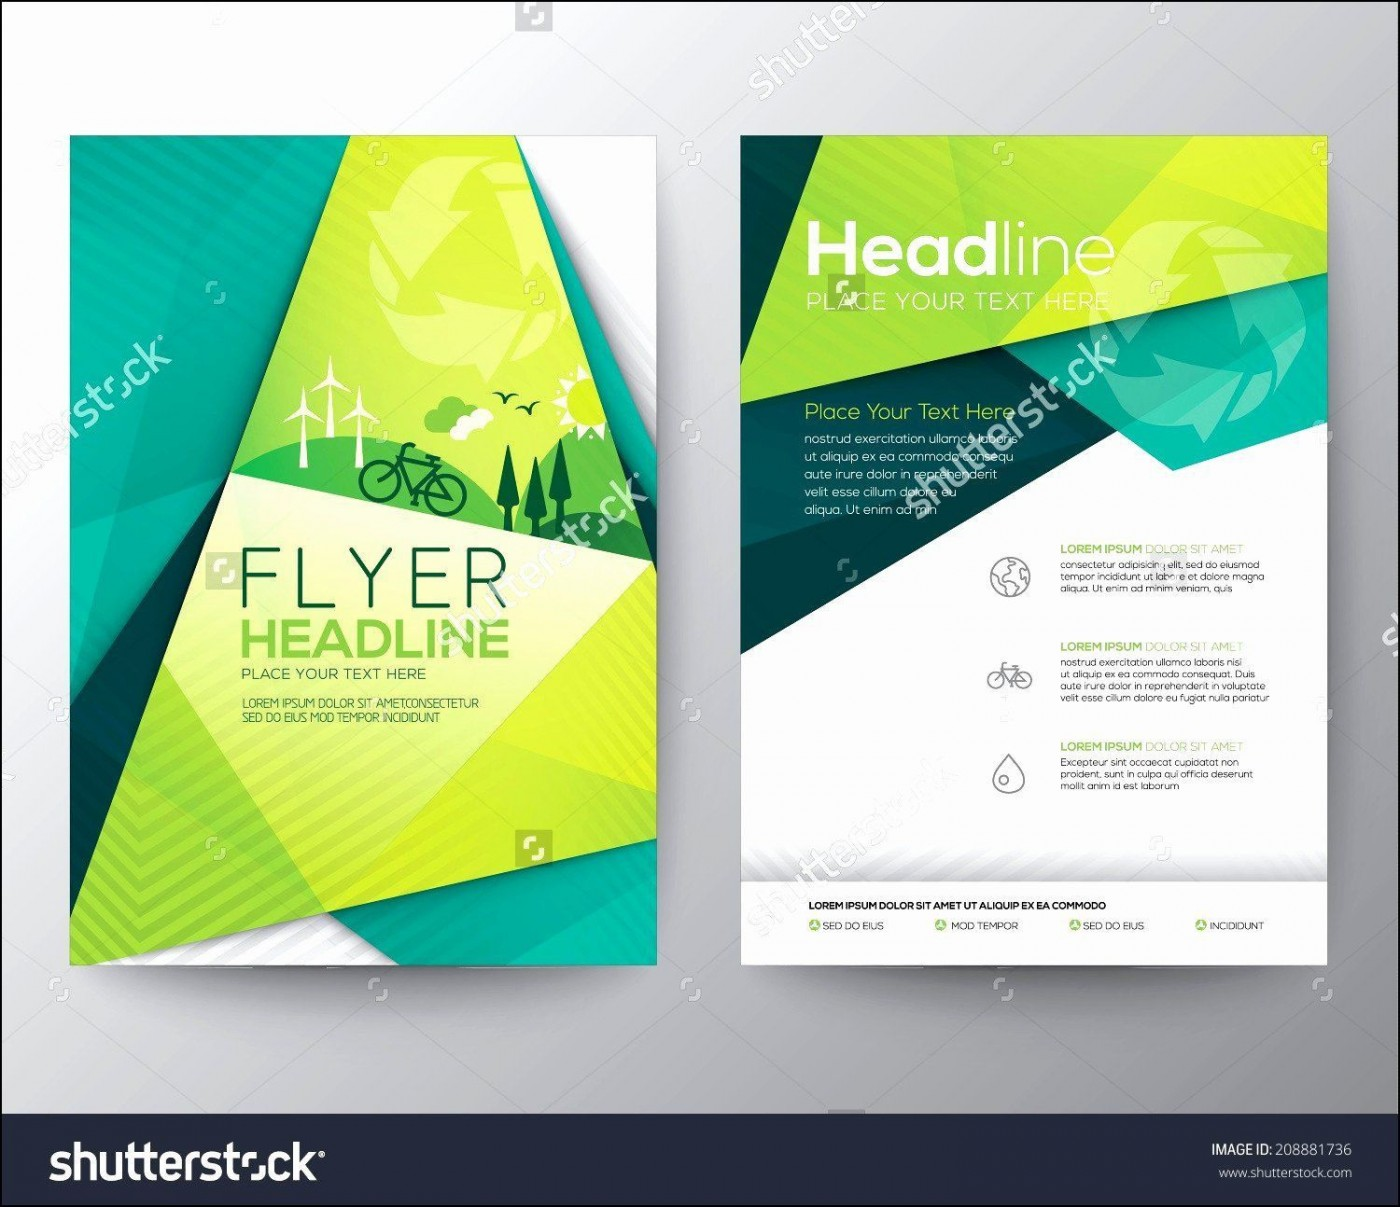 000 Dreaded Free Download Flyer Template Photo  Photoshop For Microsoft Word Downloadable Publisher1400